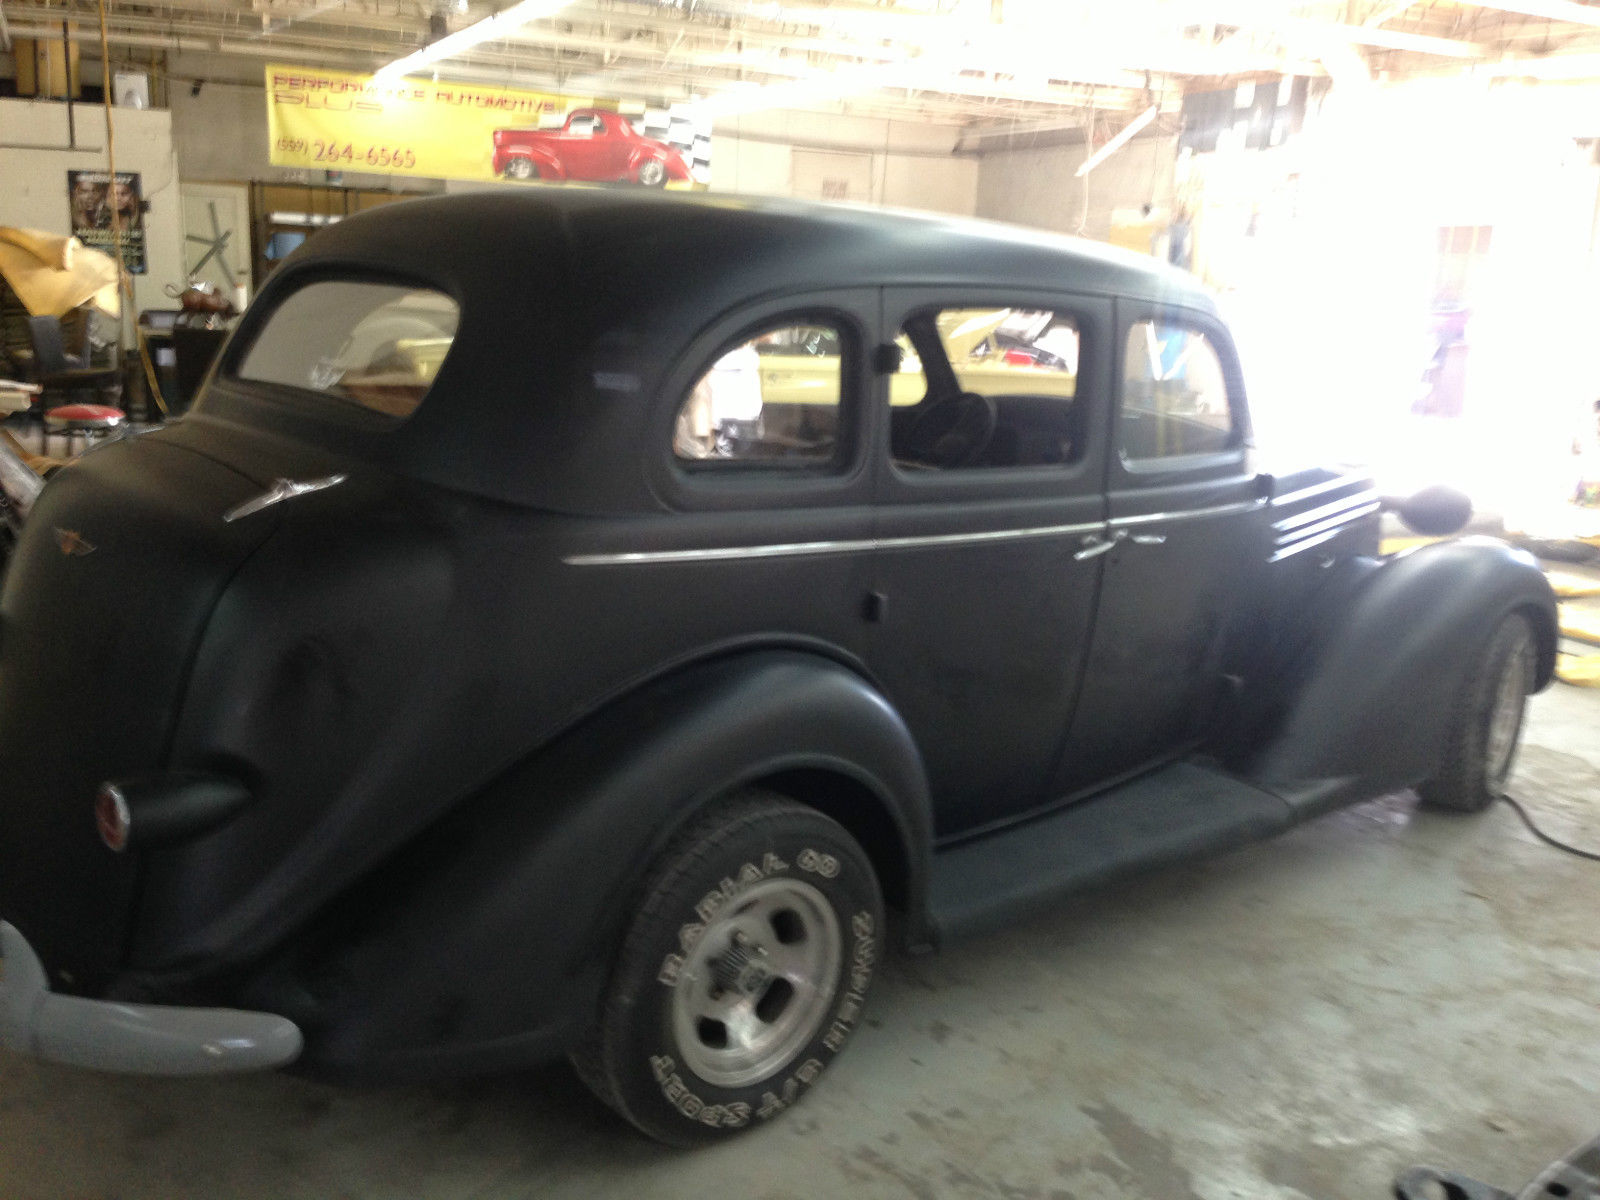 1936 dodge bros 4 dr sedan for sale in cleveland for 1936 dodge 4 door sedan